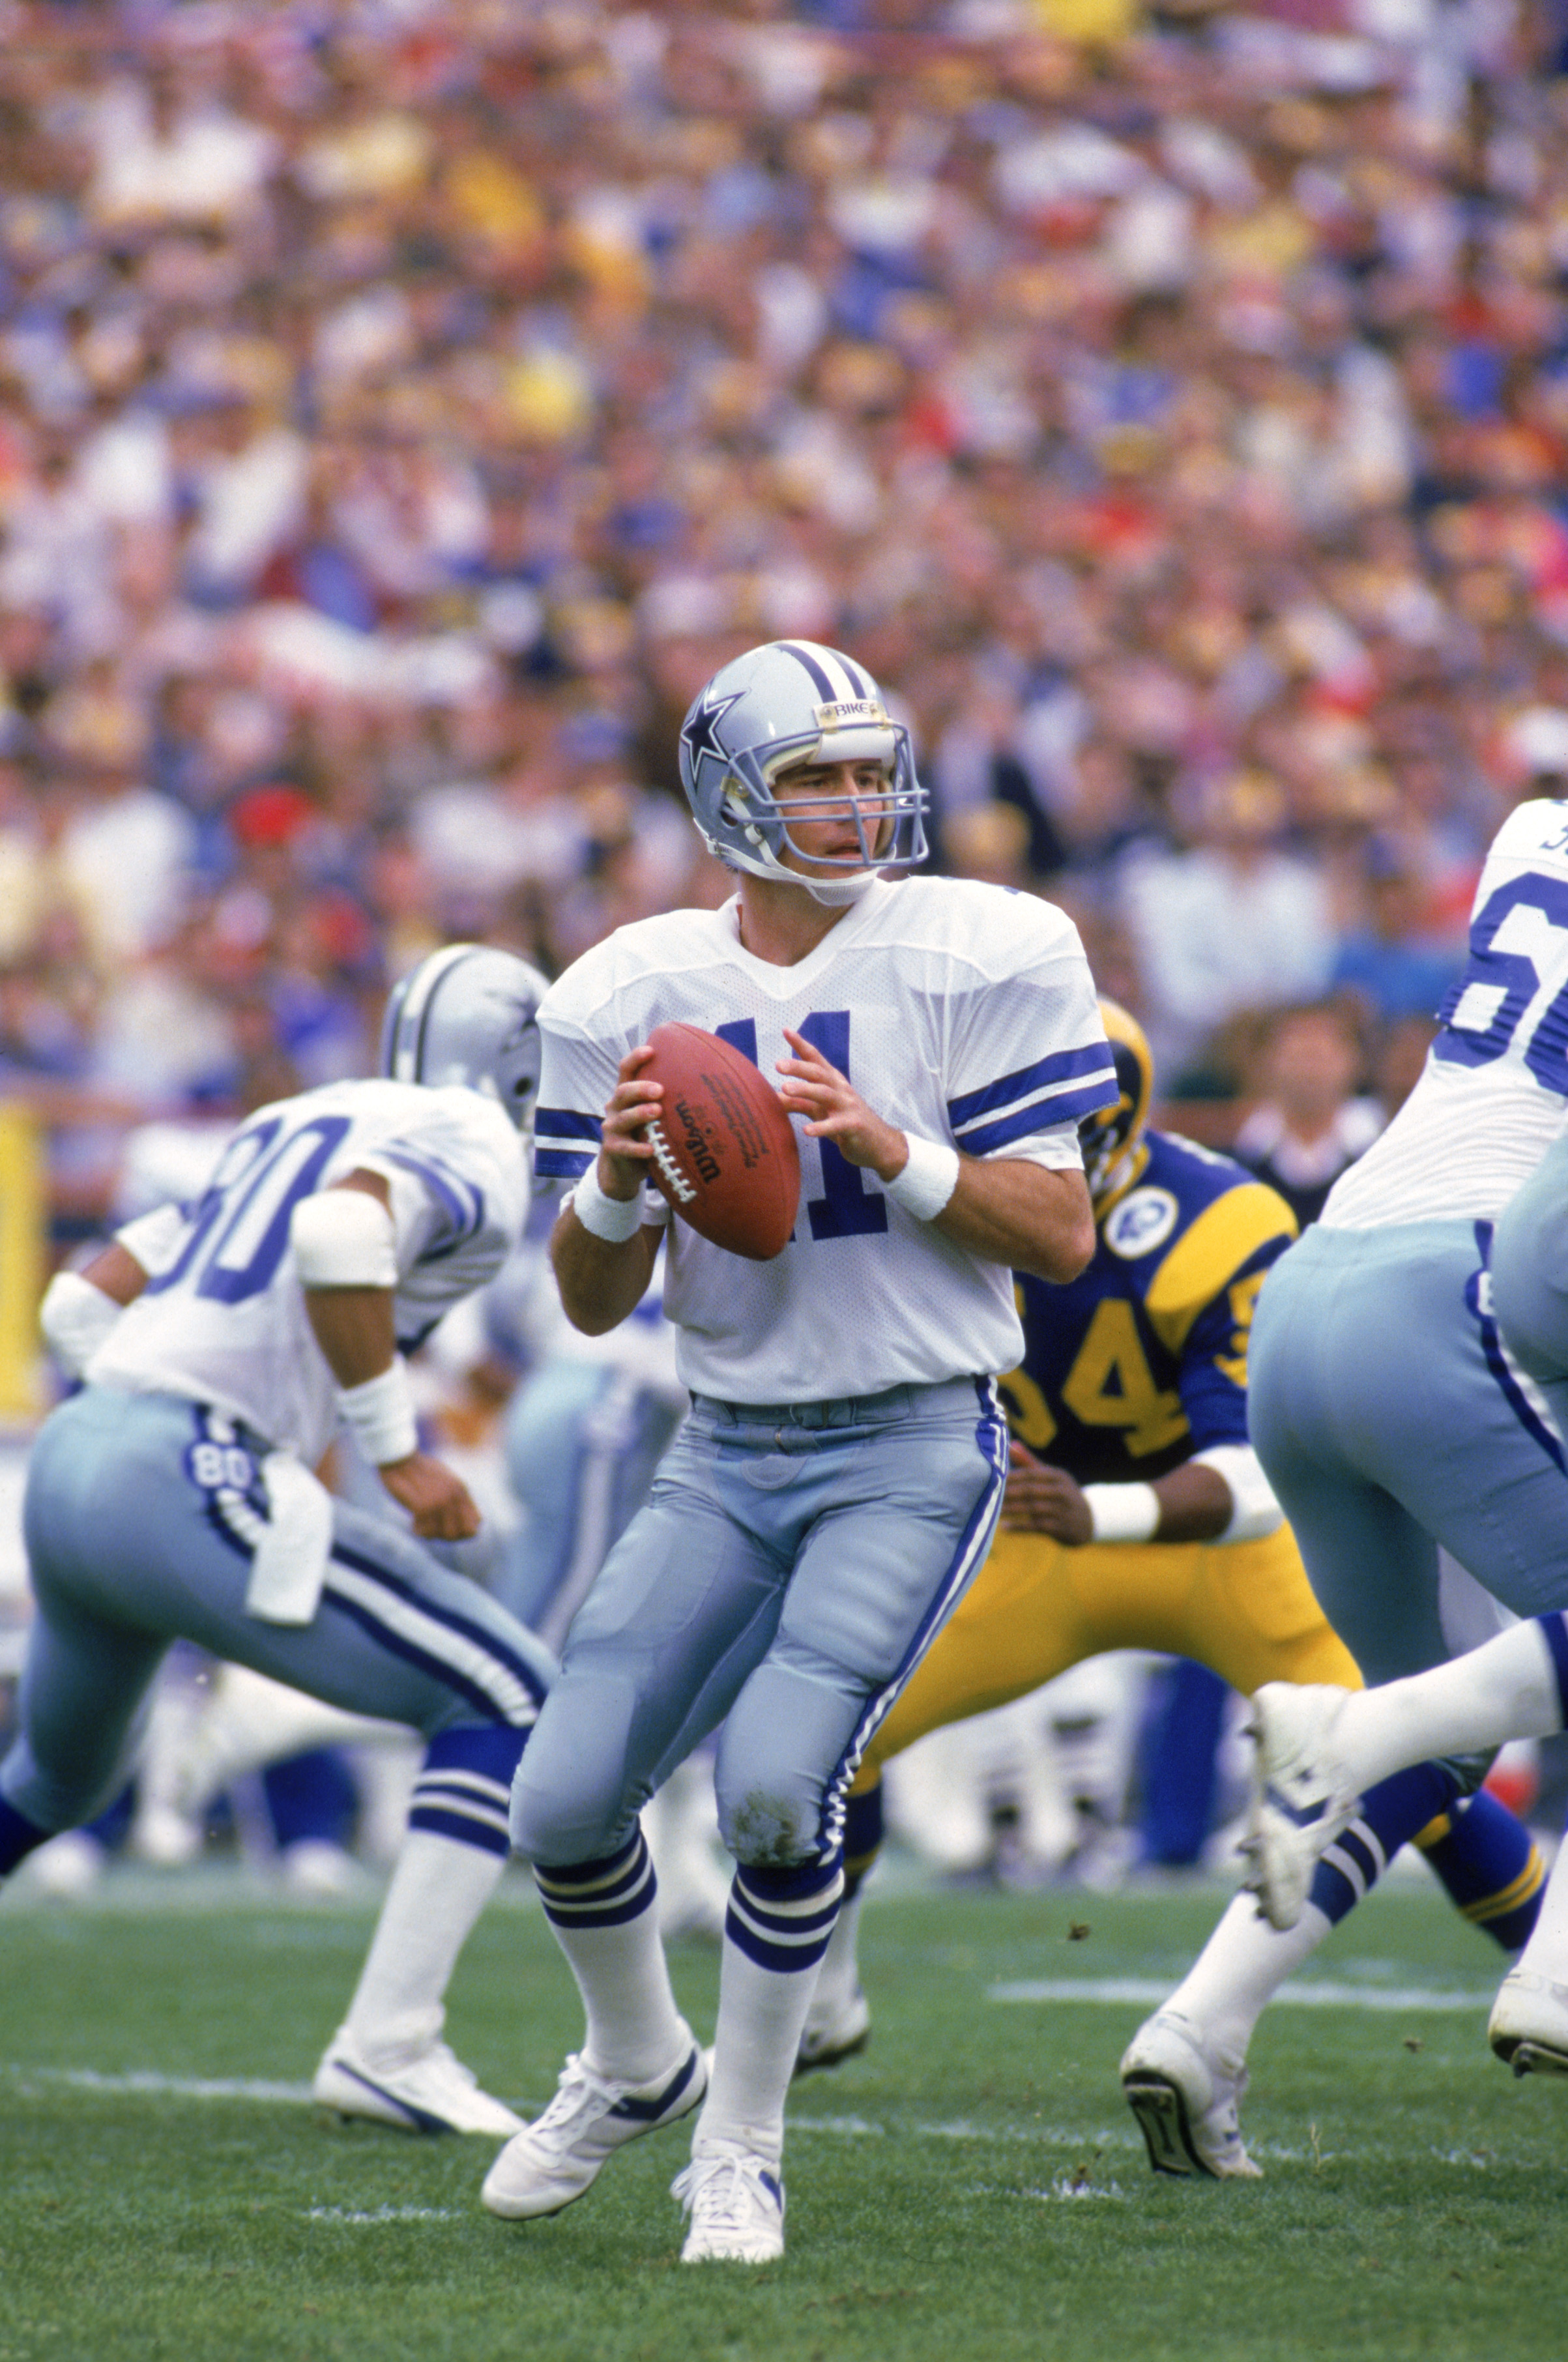 ANAHEIM, CA - JANUARY 4:  Quarterback Danny White #11 of the Dallas Cowboys looks to pass during a 1985 NFC Divisional Playoff game against the Los Angeles Rams at Anaheim Stadium on January 4, 1996 in Anaheim, California.  The Rams won 20-0.  (Photo by G